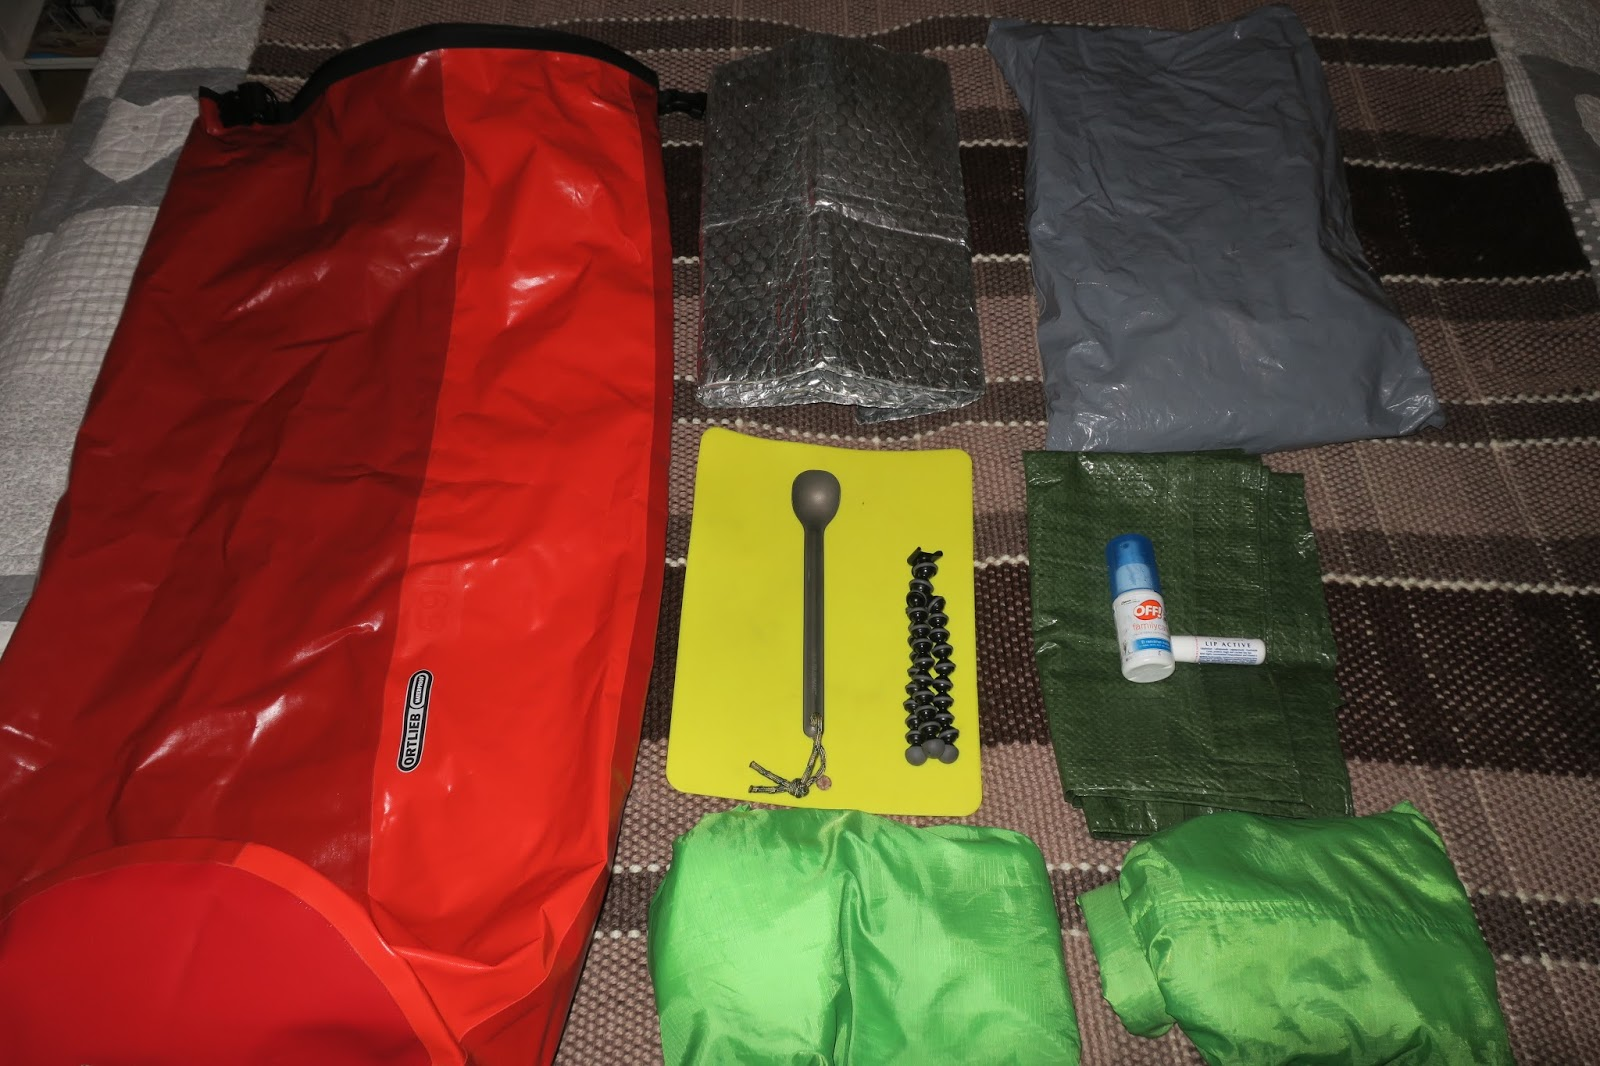 f736cb1bf926 Below  70ltr Osprey Aether backpack. The Toiletries will go inside the dry  sack near the top of the bag